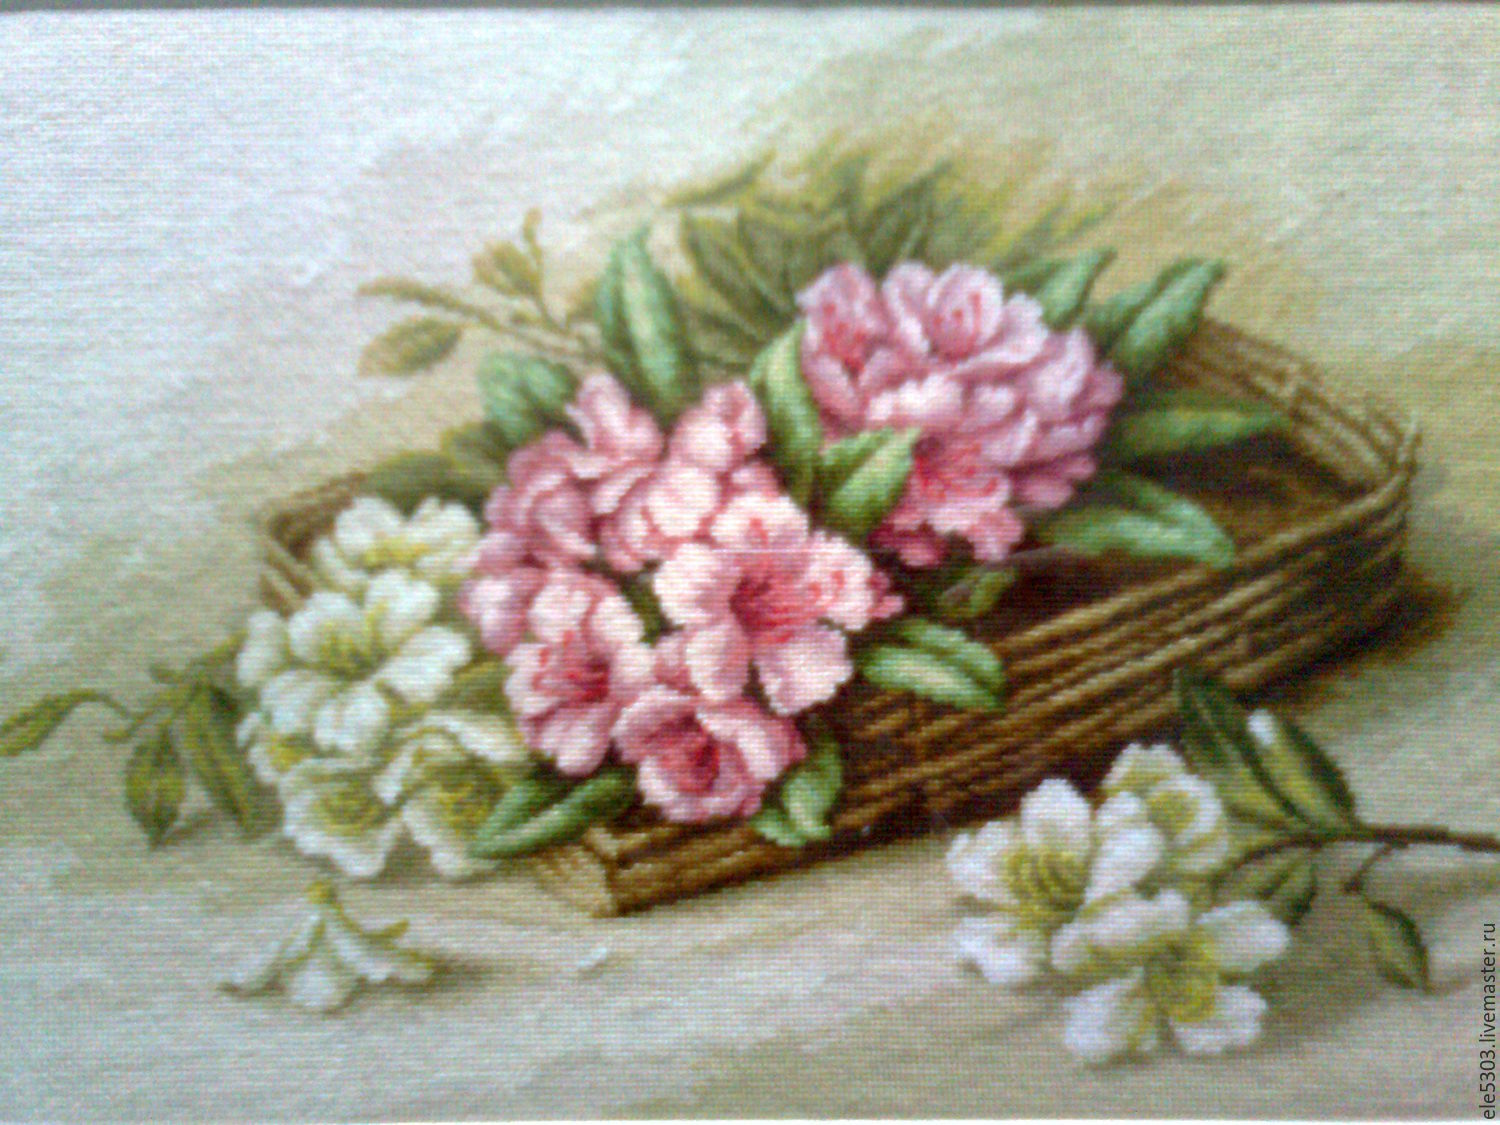 Embroidered picture of'Azaleas in a basket', Pictures, St. Petersburg,  Фото №1